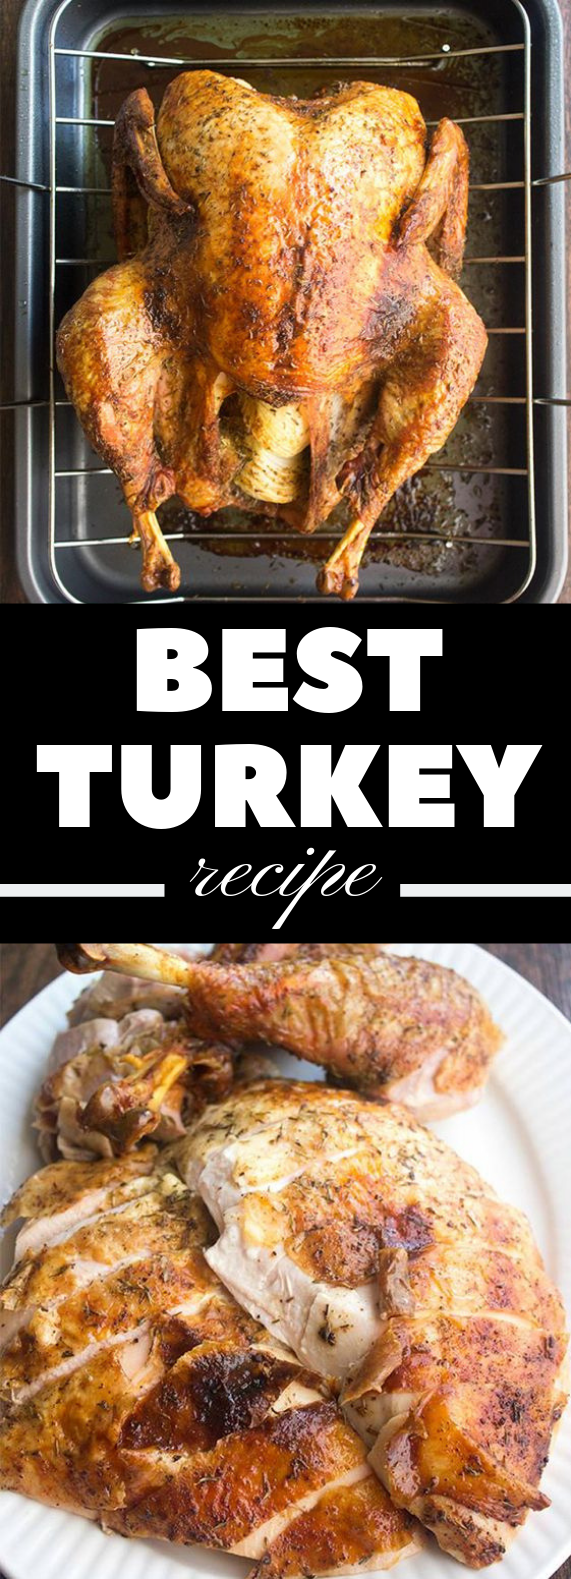 BEST THANKSGIVING TURKEY RECIPE (HOW TO COOK A TURKEY) #ThanksgivingTurkey #Turkeyrecipe